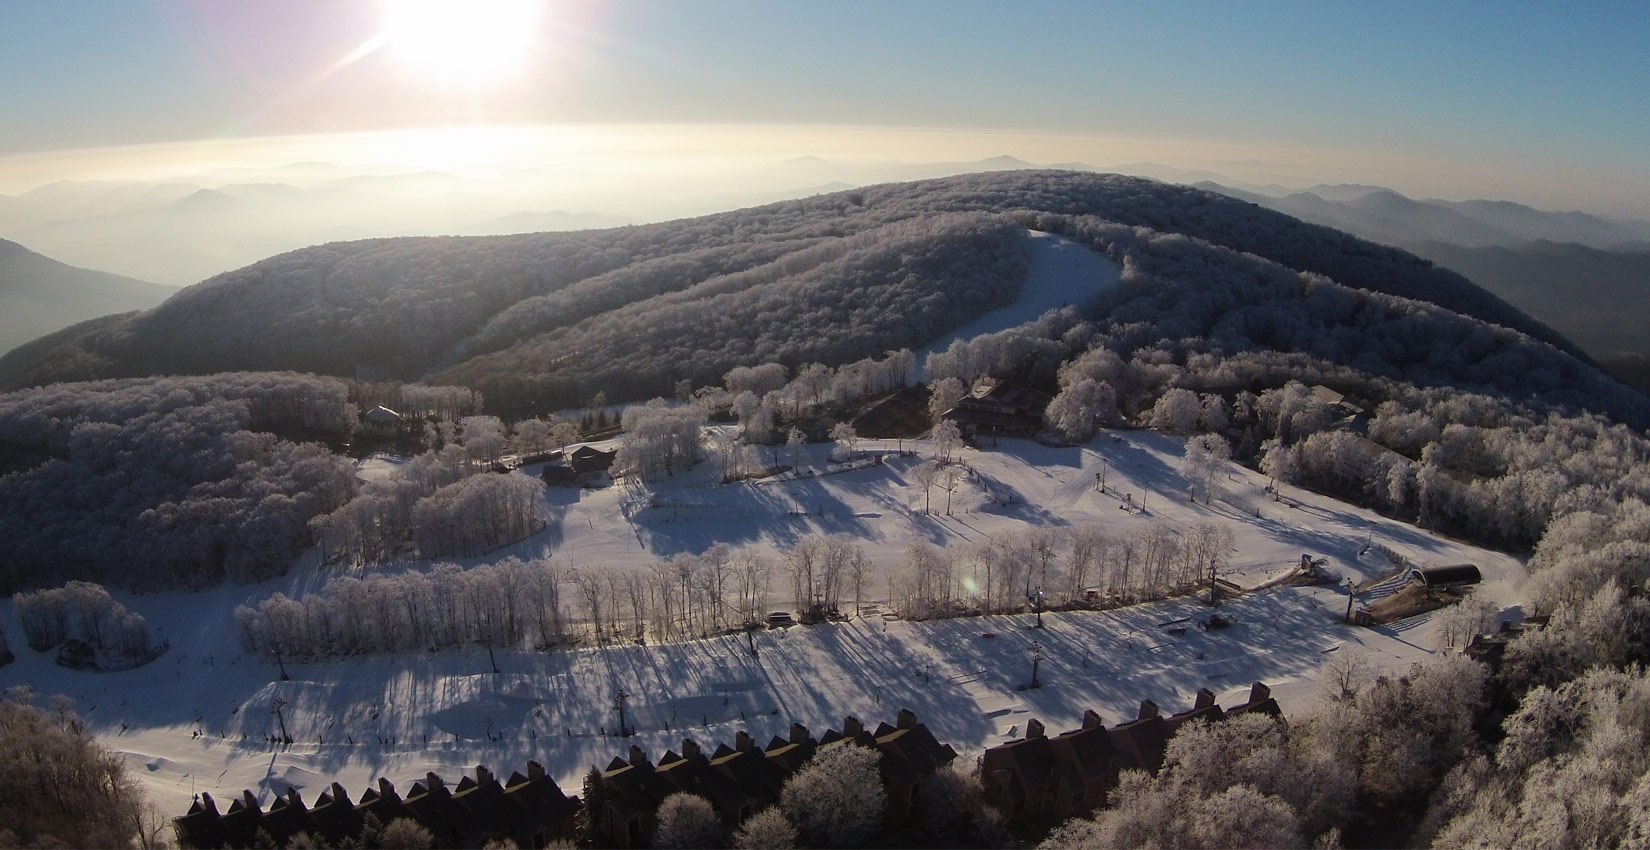 frosty snowy morning at Wintergreen Resort in virginia